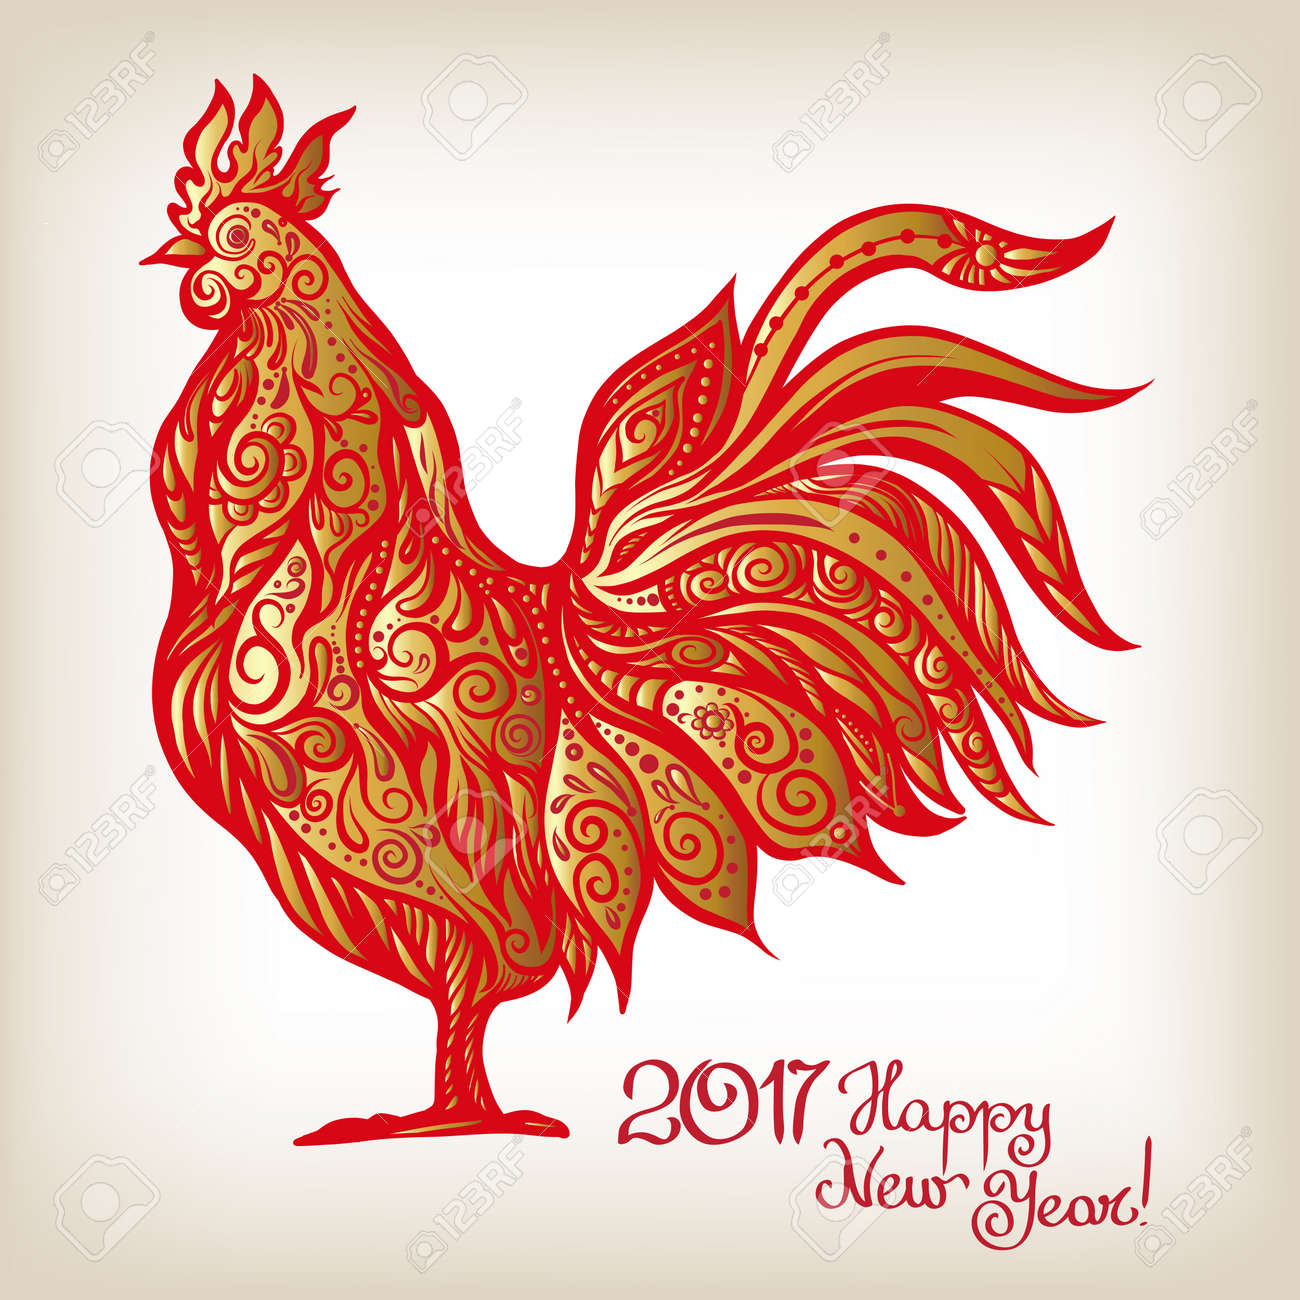 Decorative colored rooster chinese new year symbol 2017 new chinese new year symbol 2017 new year colored illustration with buycottarizona Gallery